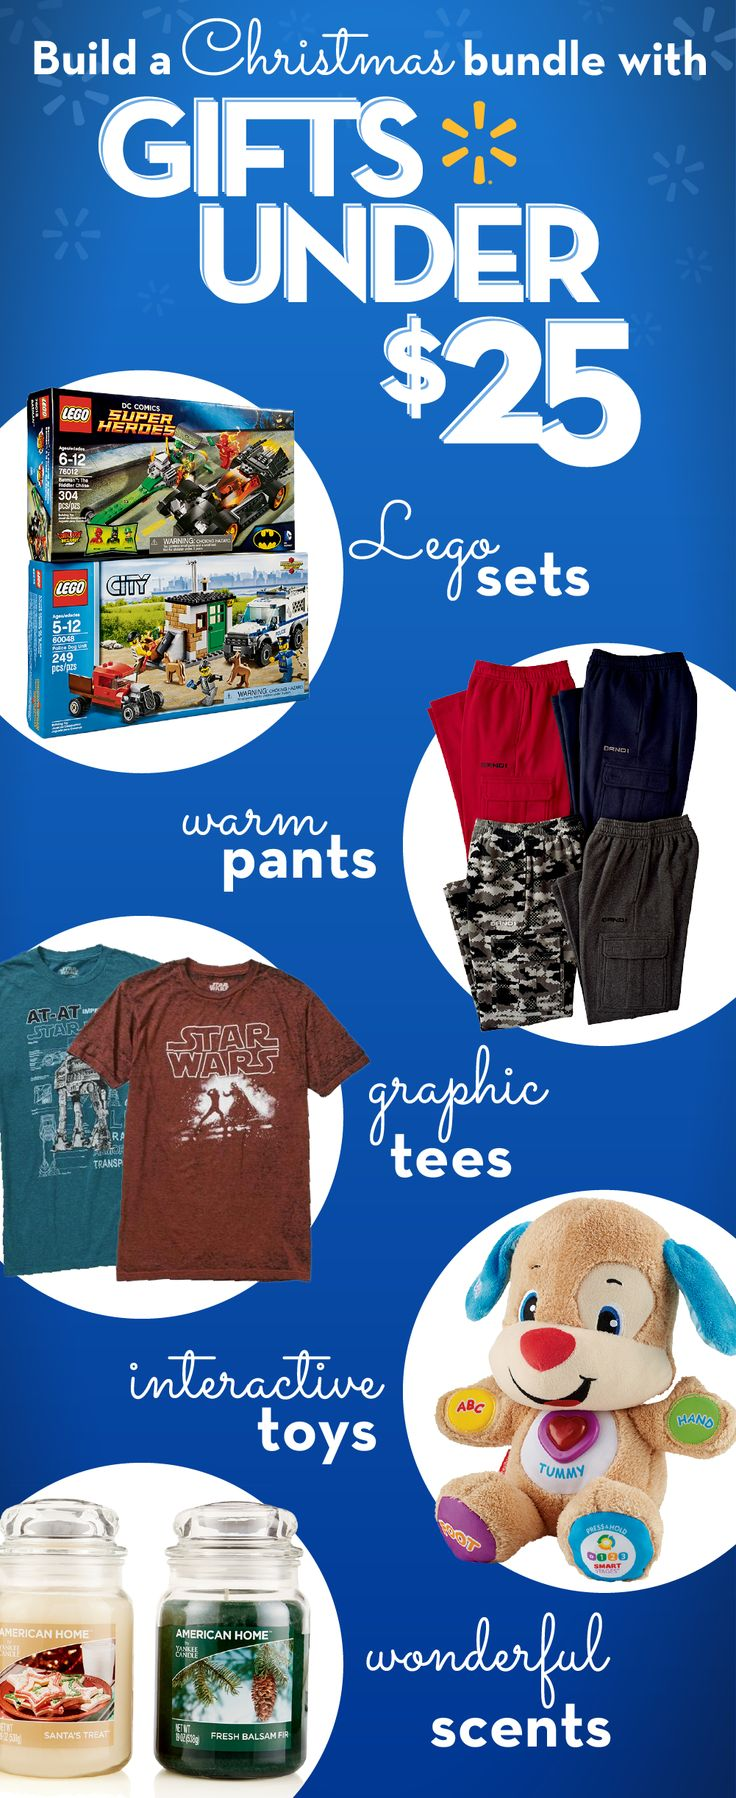 Looking for great gifts under $25? Get quality presents for less at Walmart. Check out inexpensive ideas for everyone on your list. Find toys for kids like the Fisher-Price Laugh & Learn Puppy. Lego Sets are fun for all ages. Stylish graphic tees and warm, comfy winter clothing make great gifts for men and women. American Home by Yankee Candles are great go-to gifts for mom, grandma, friends & teachers. Get more ideas for gift exchanges, shopping on a budget or polishing off your Christmas…